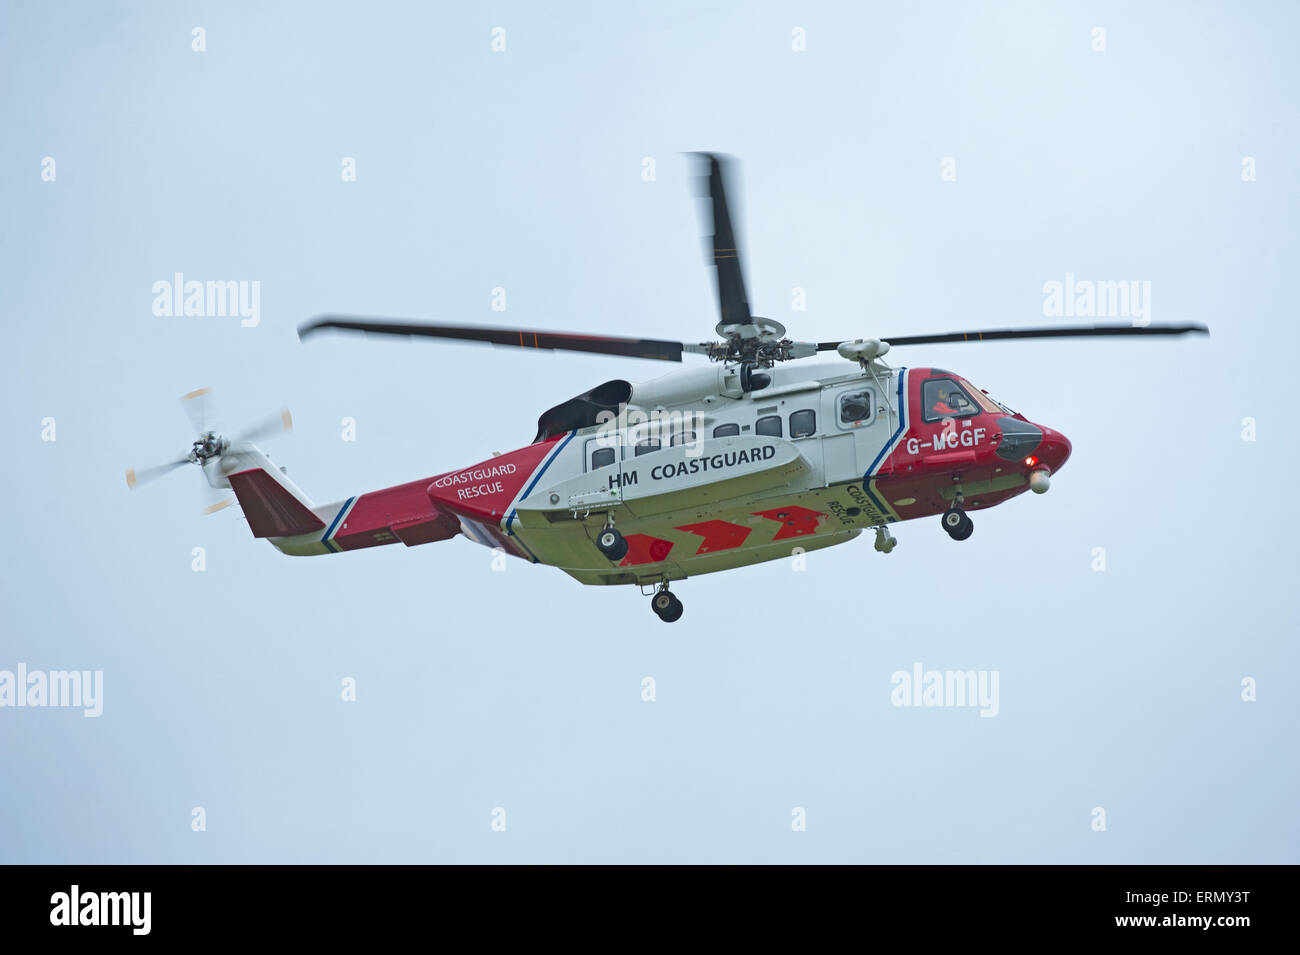 The Scottish Search and Rescue Coastguard S92A helicopter based at Inverness.  SCO 9844. - Stock Image